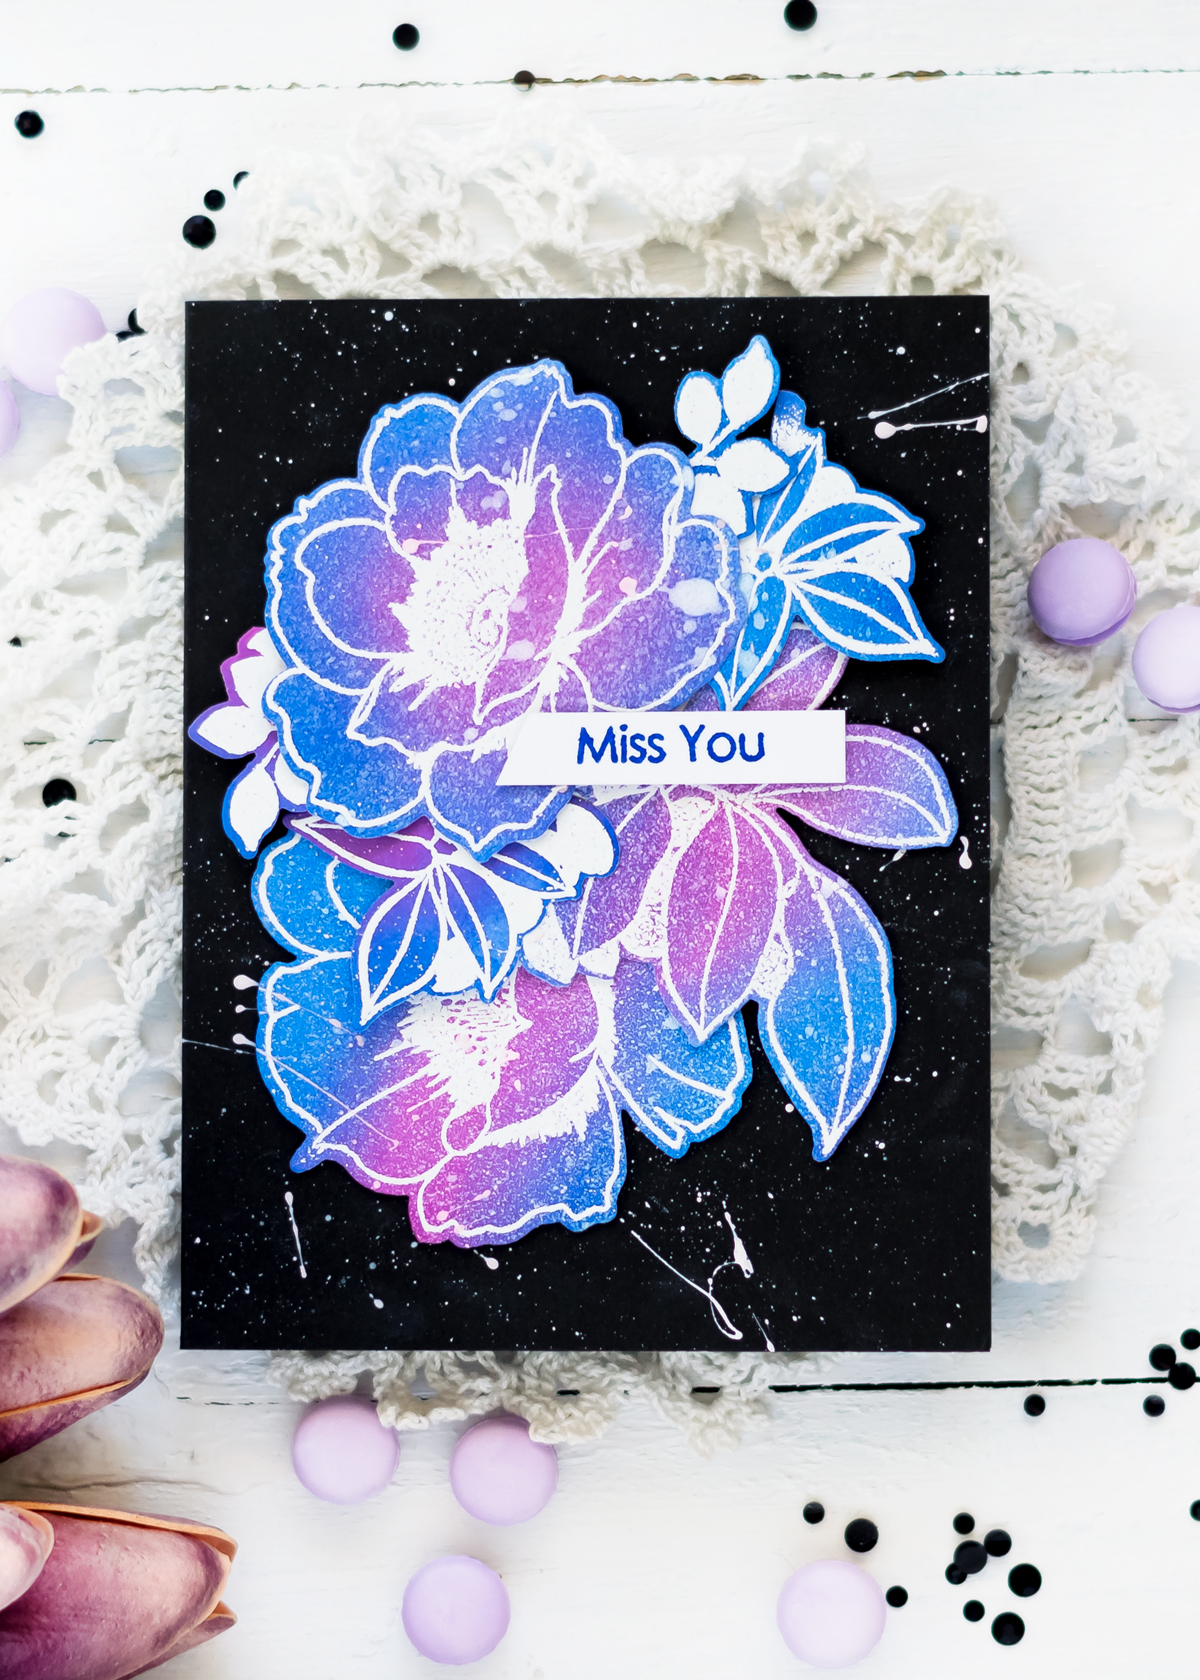 Floral Galaxy Card with Altenew Wallpaper Art Stamp Set. Card by Svitlana Shayevich